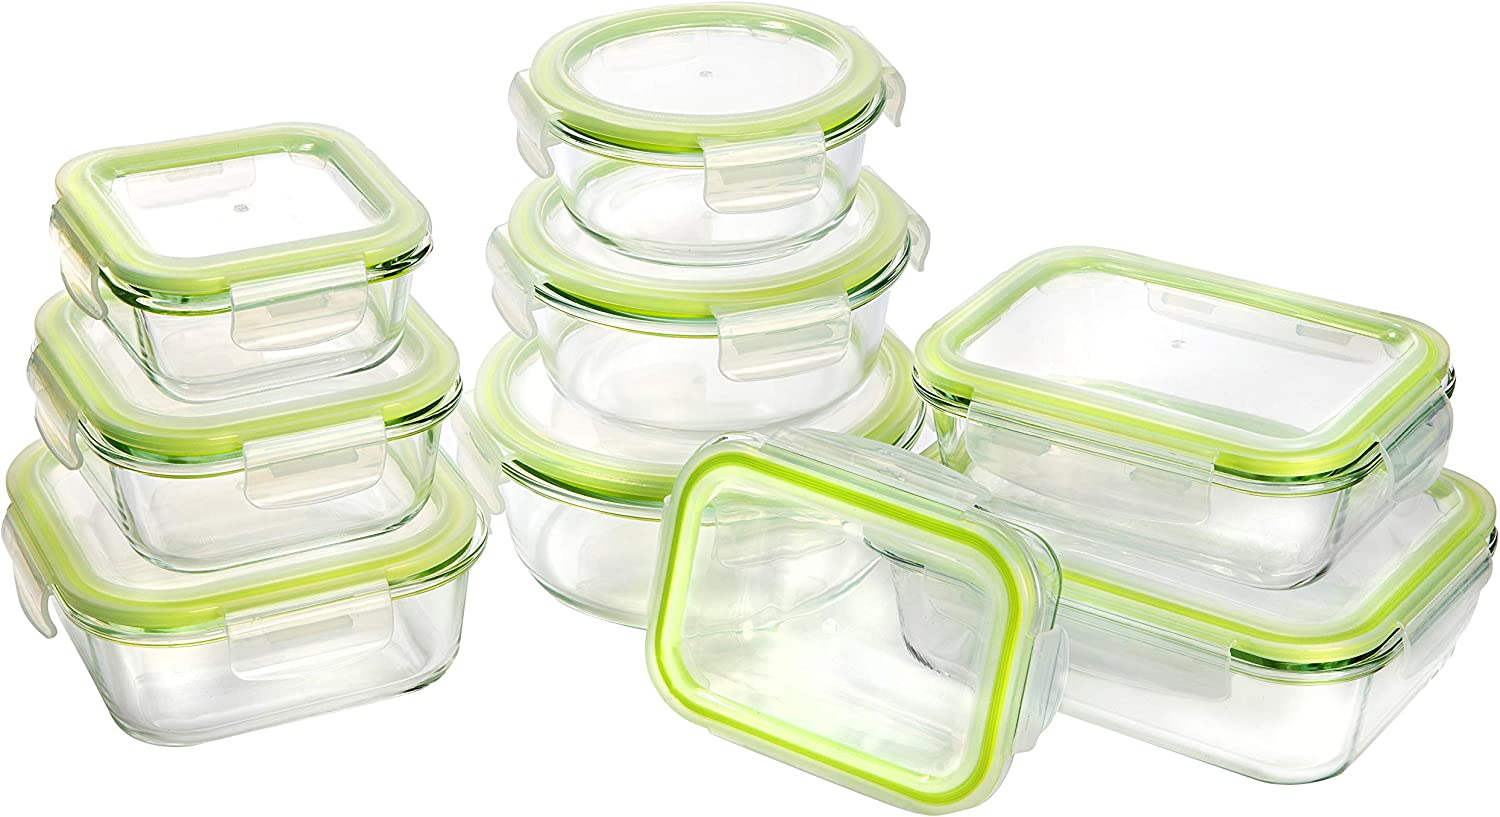 Bayco Glass Storage Containers with Lids, 9 Sets Glass Meal Prep Containers Airtight, Glass Food Storage Containers, Glass Containers for Food Storage with Lids - BPA-Free & Leak Proof(Green)